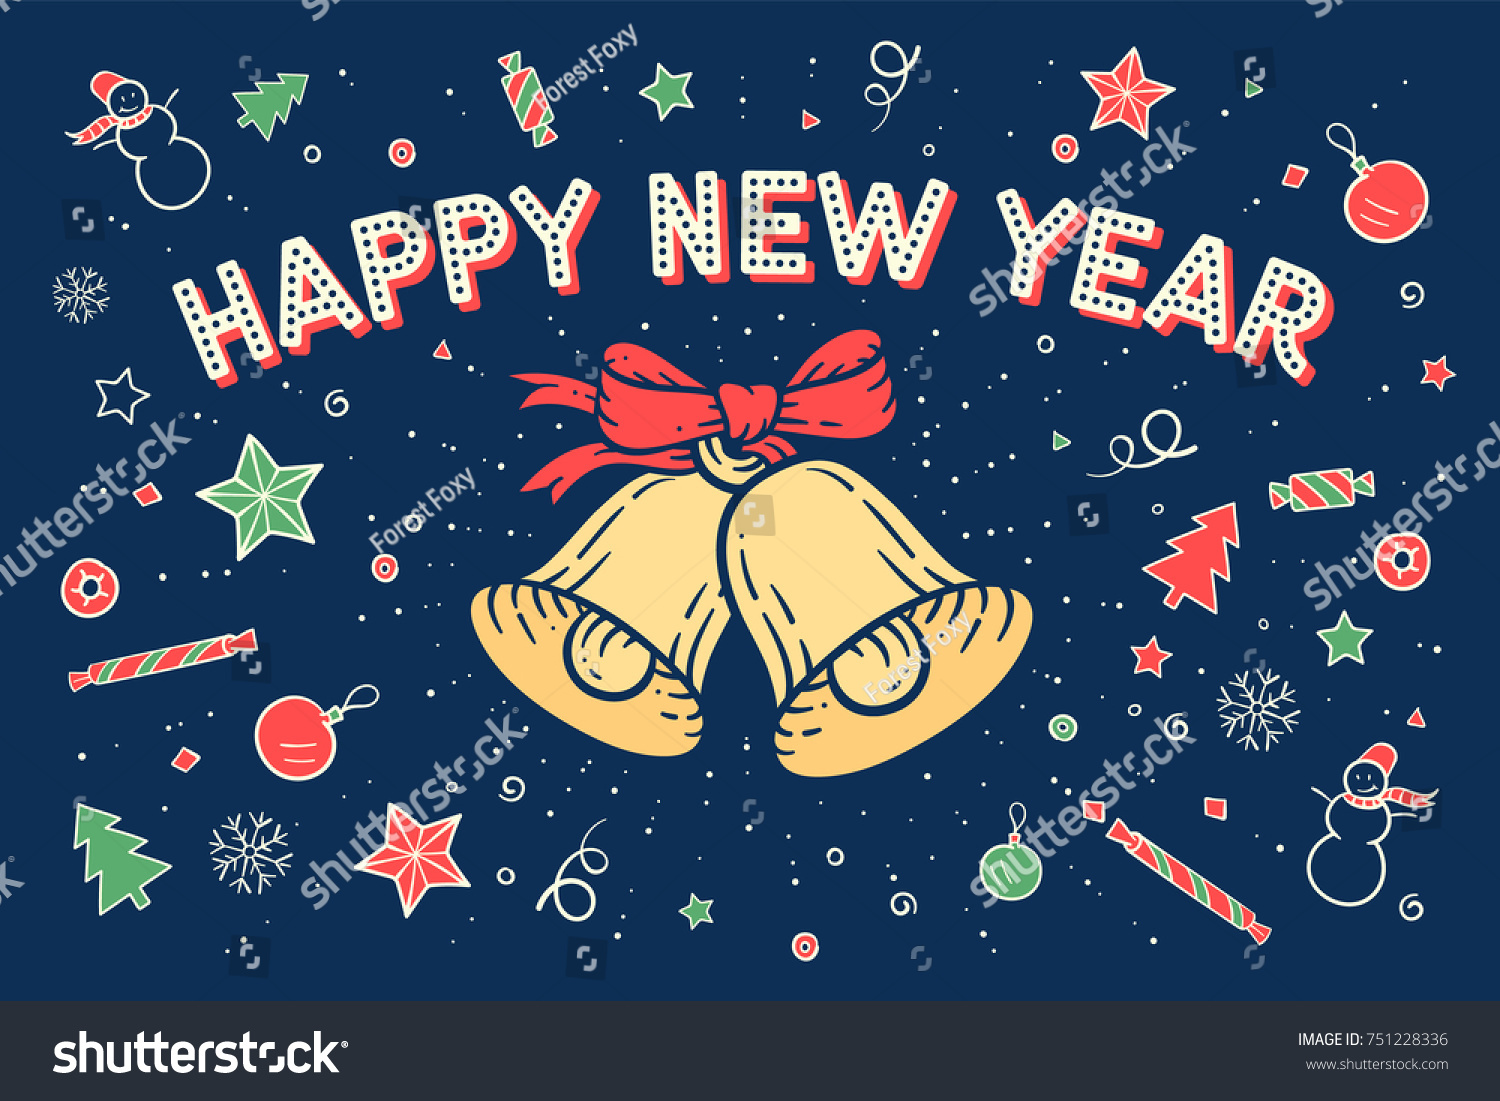 Happy new year greeting card bell stock vector 751228336 shutterstock happy new year greeting card with bell and text happy new year with starburst on kristyandbryce Images